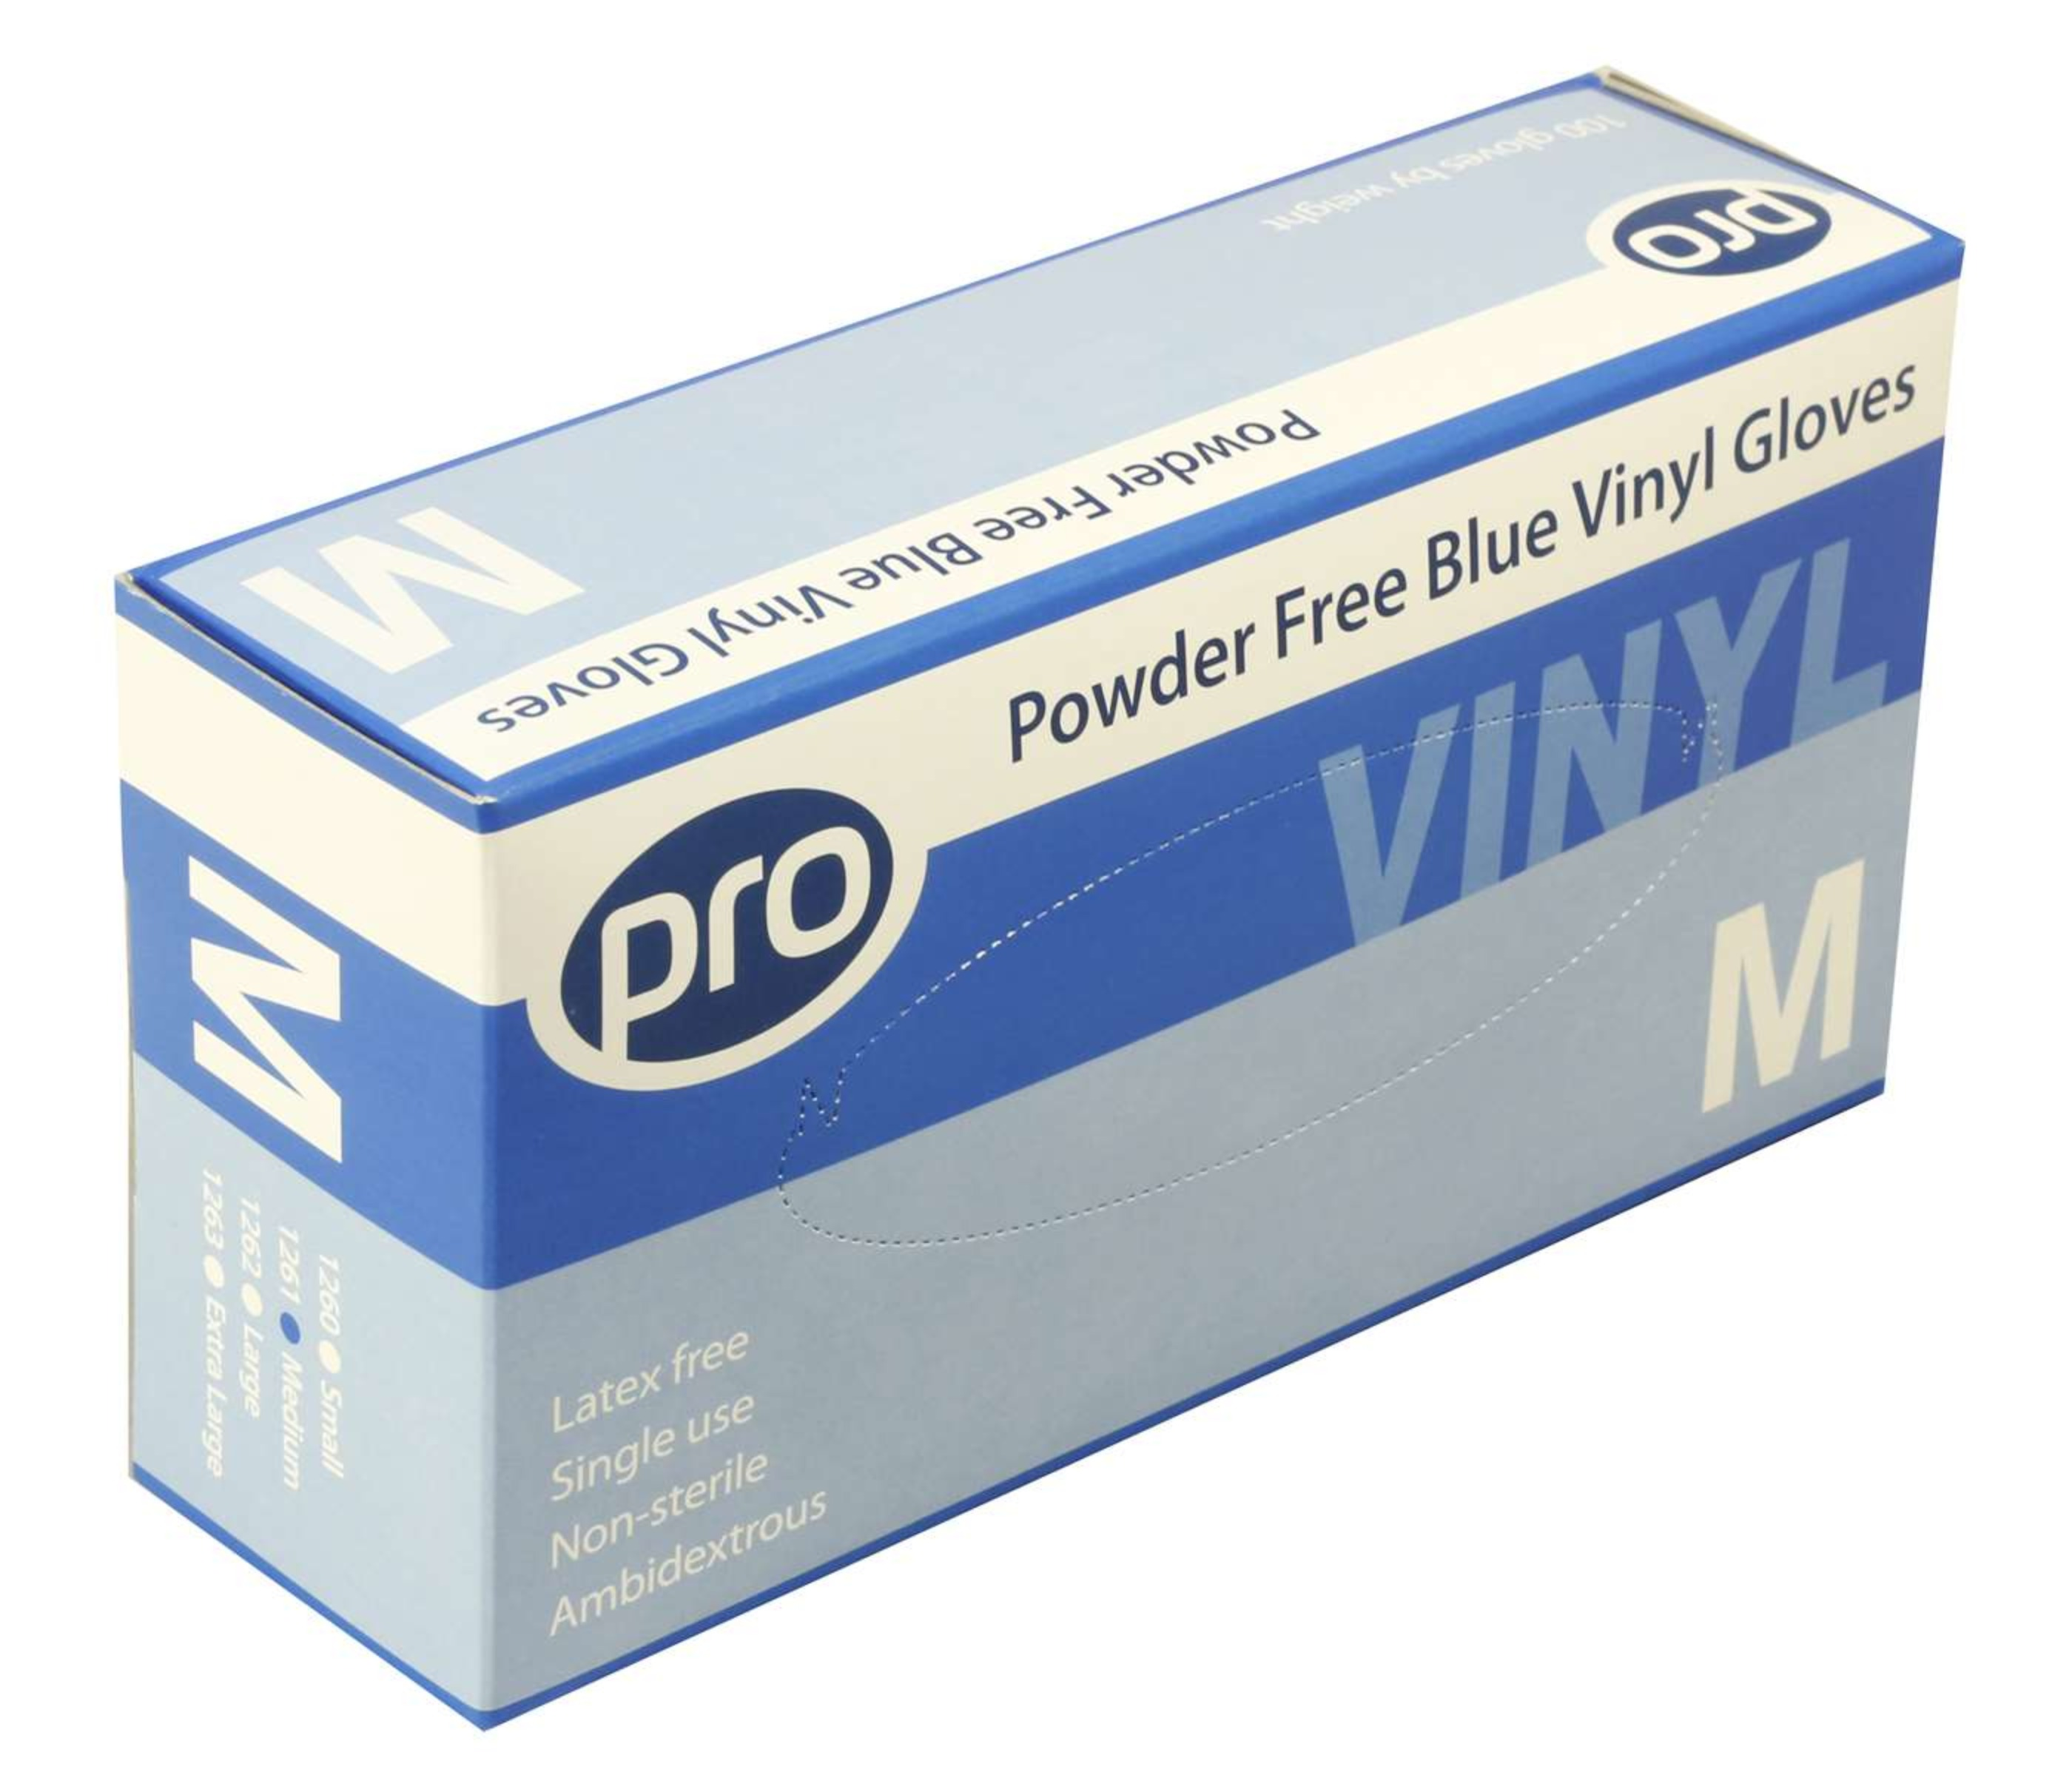 Blue Vinyl Gloves - Medium 1x100